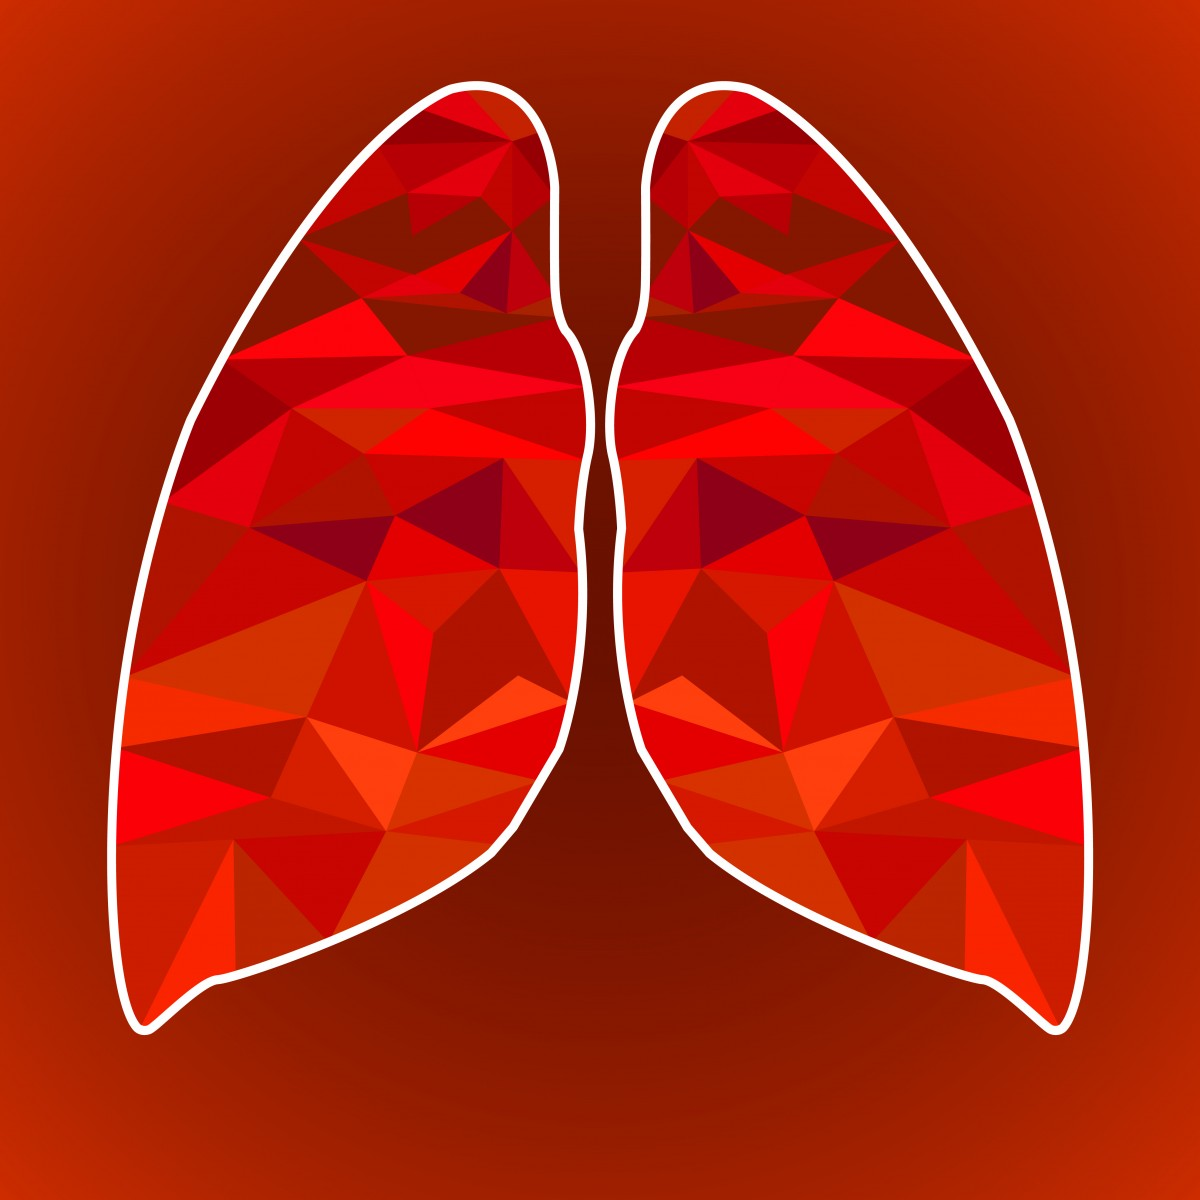 Pulmonary Hypertension Risk in People with Pulmonary Embolisms Often Overlooked, Study Finds